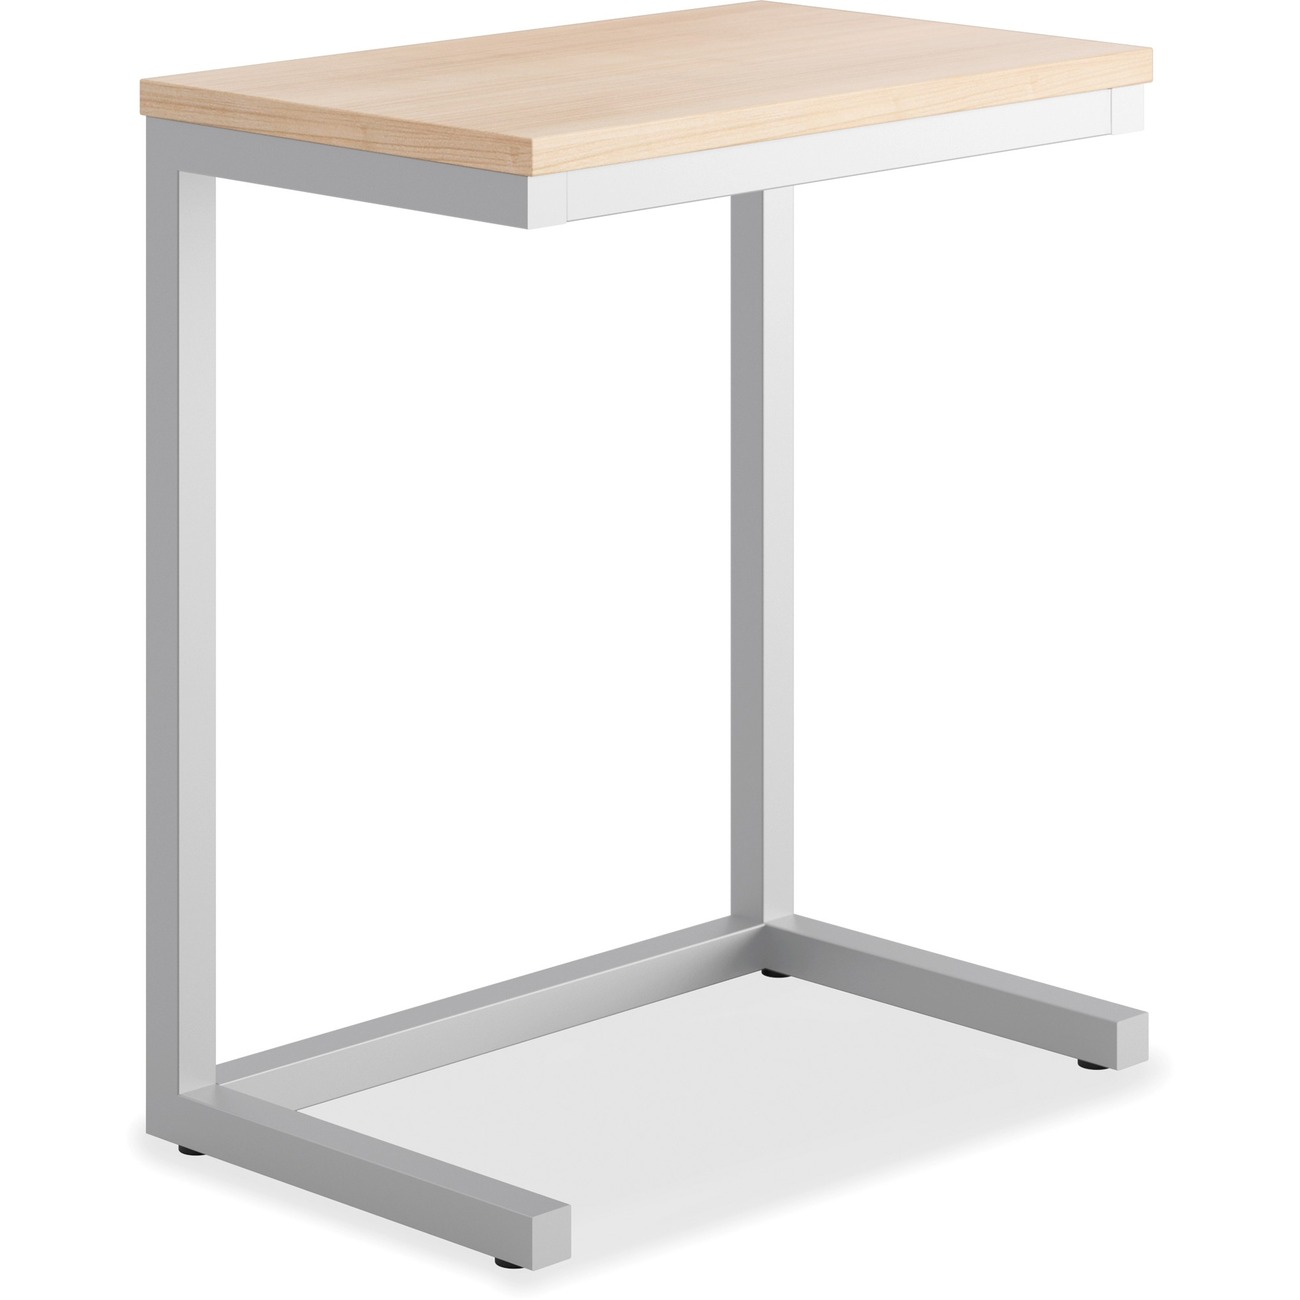 Dynamic Office Products Furniture Furniture Collections Desks - Hon table legs